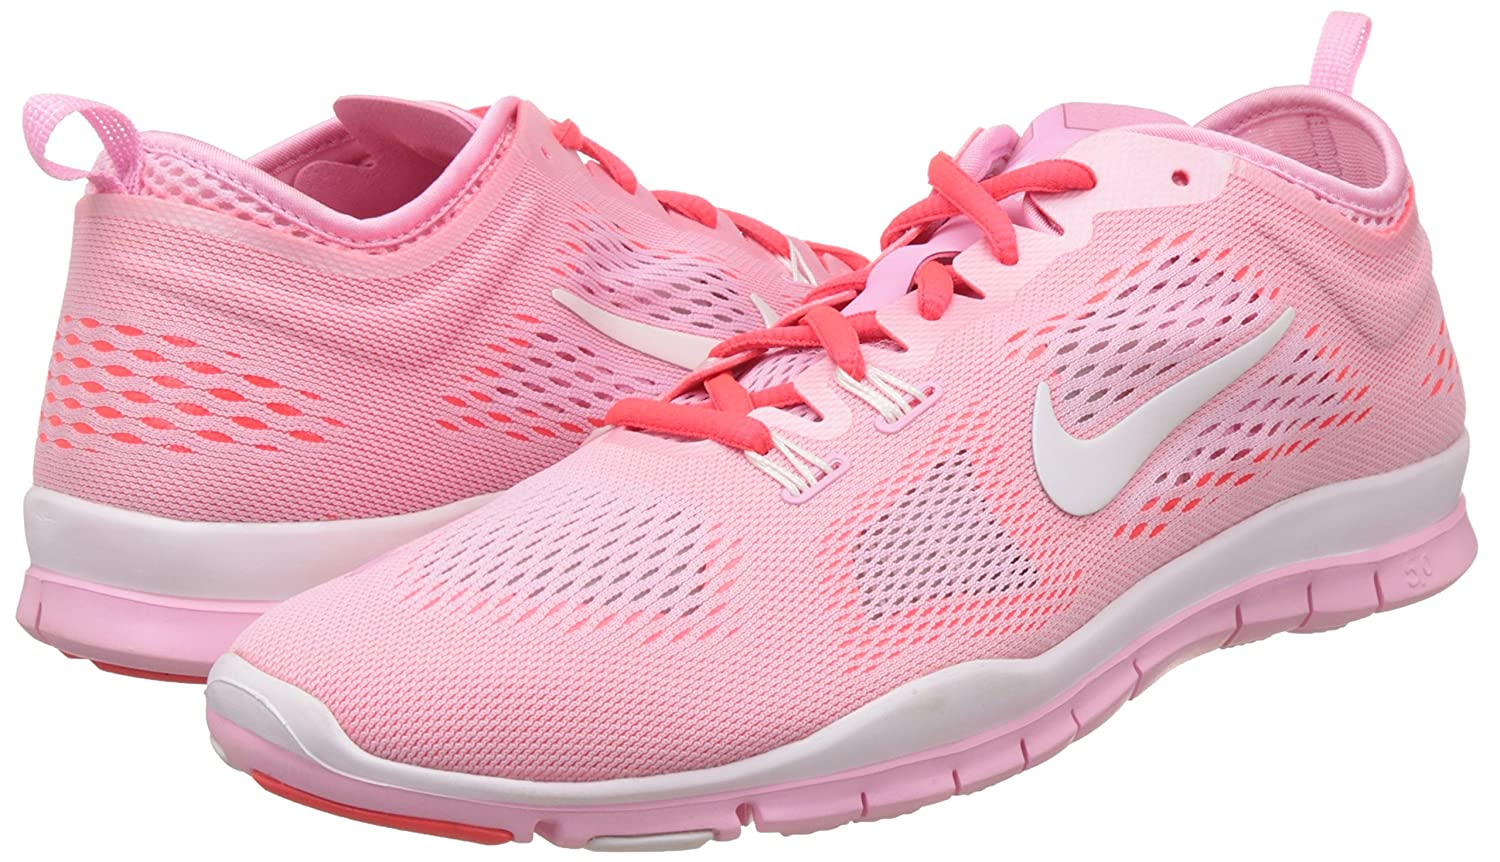 super popular 92f68 3de1e Amazon.com   Nike Free 5.0 Train Fit 4 Breath Womens Cross Trainer Shoes  641875-600 Perfect Pink 8.5 M US   Road Running